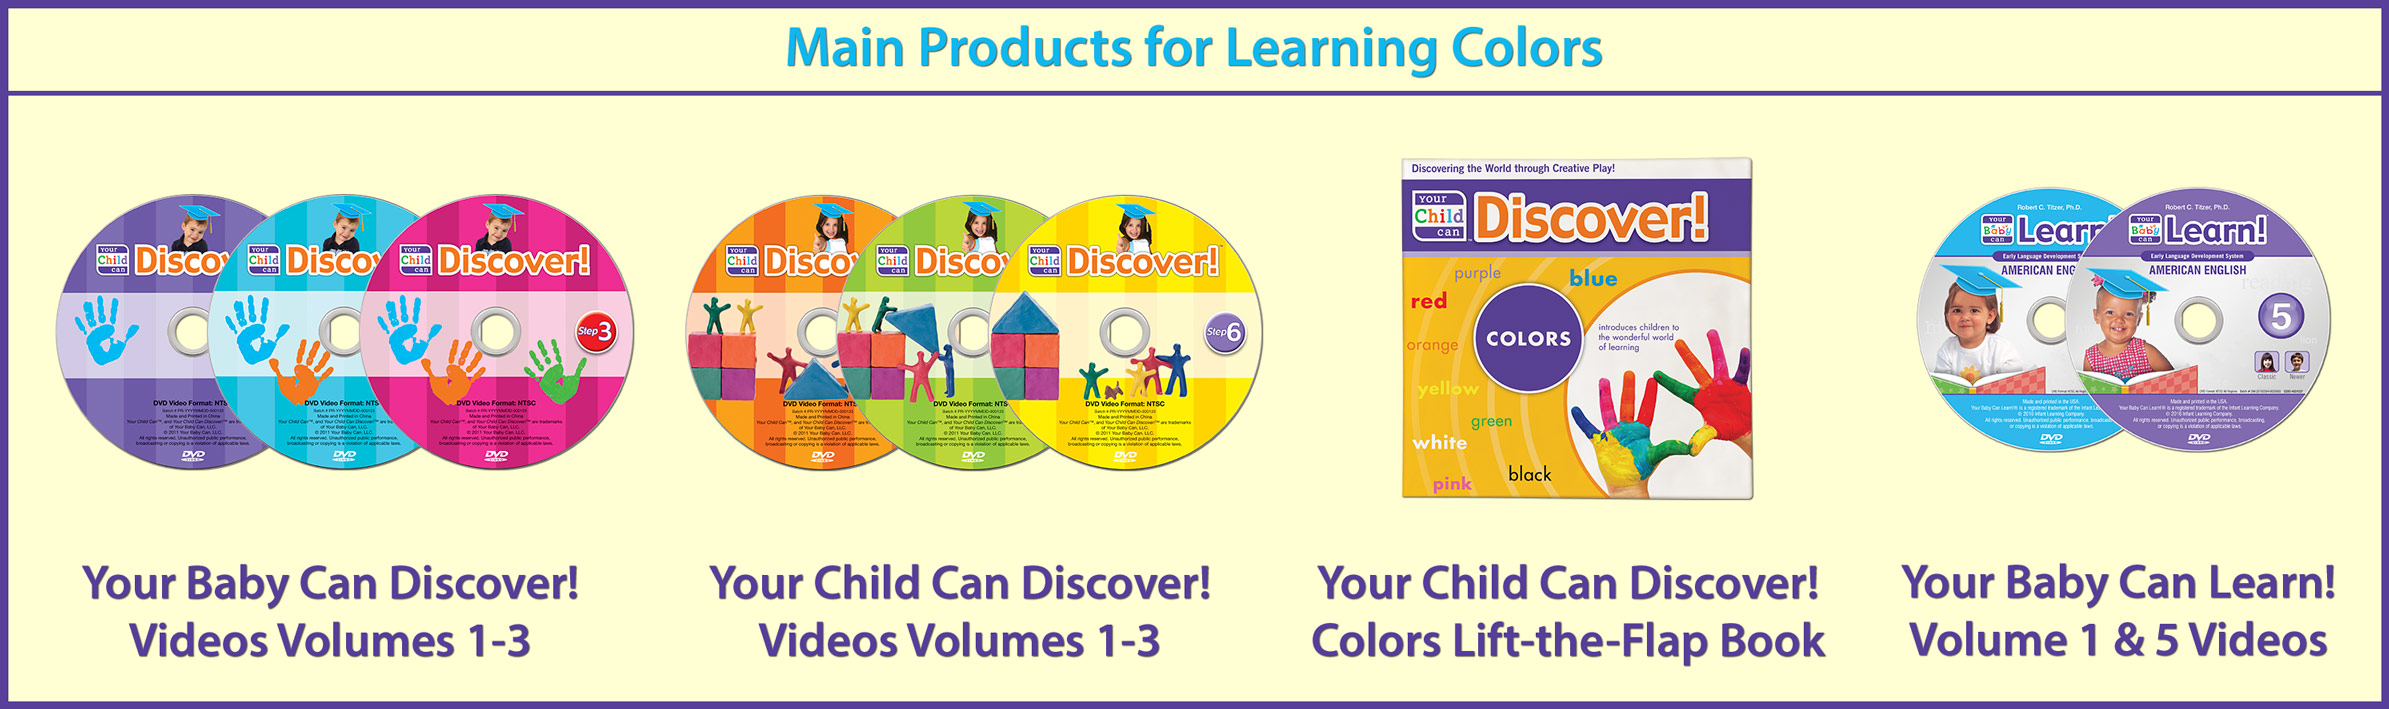 Main Products for Learning Colors